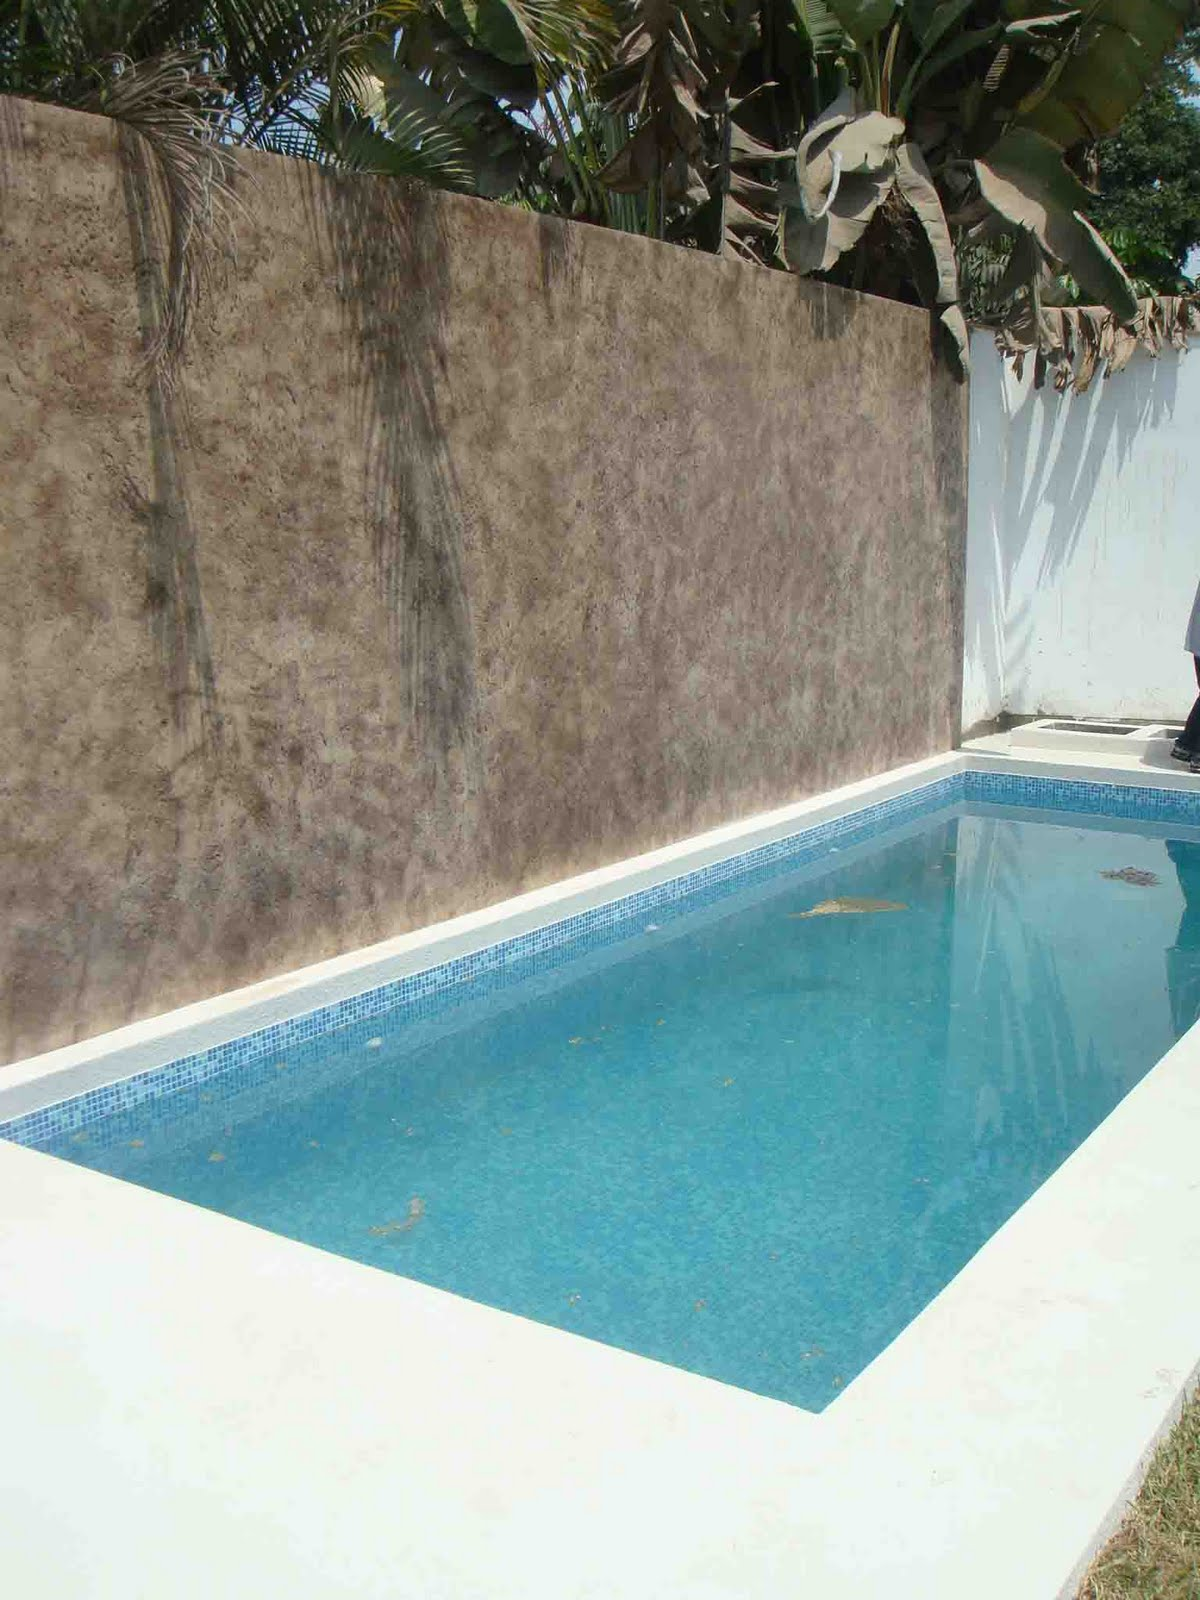 Pin abanico madera estampado cuadros on pinterest for Borde piscina hormigon